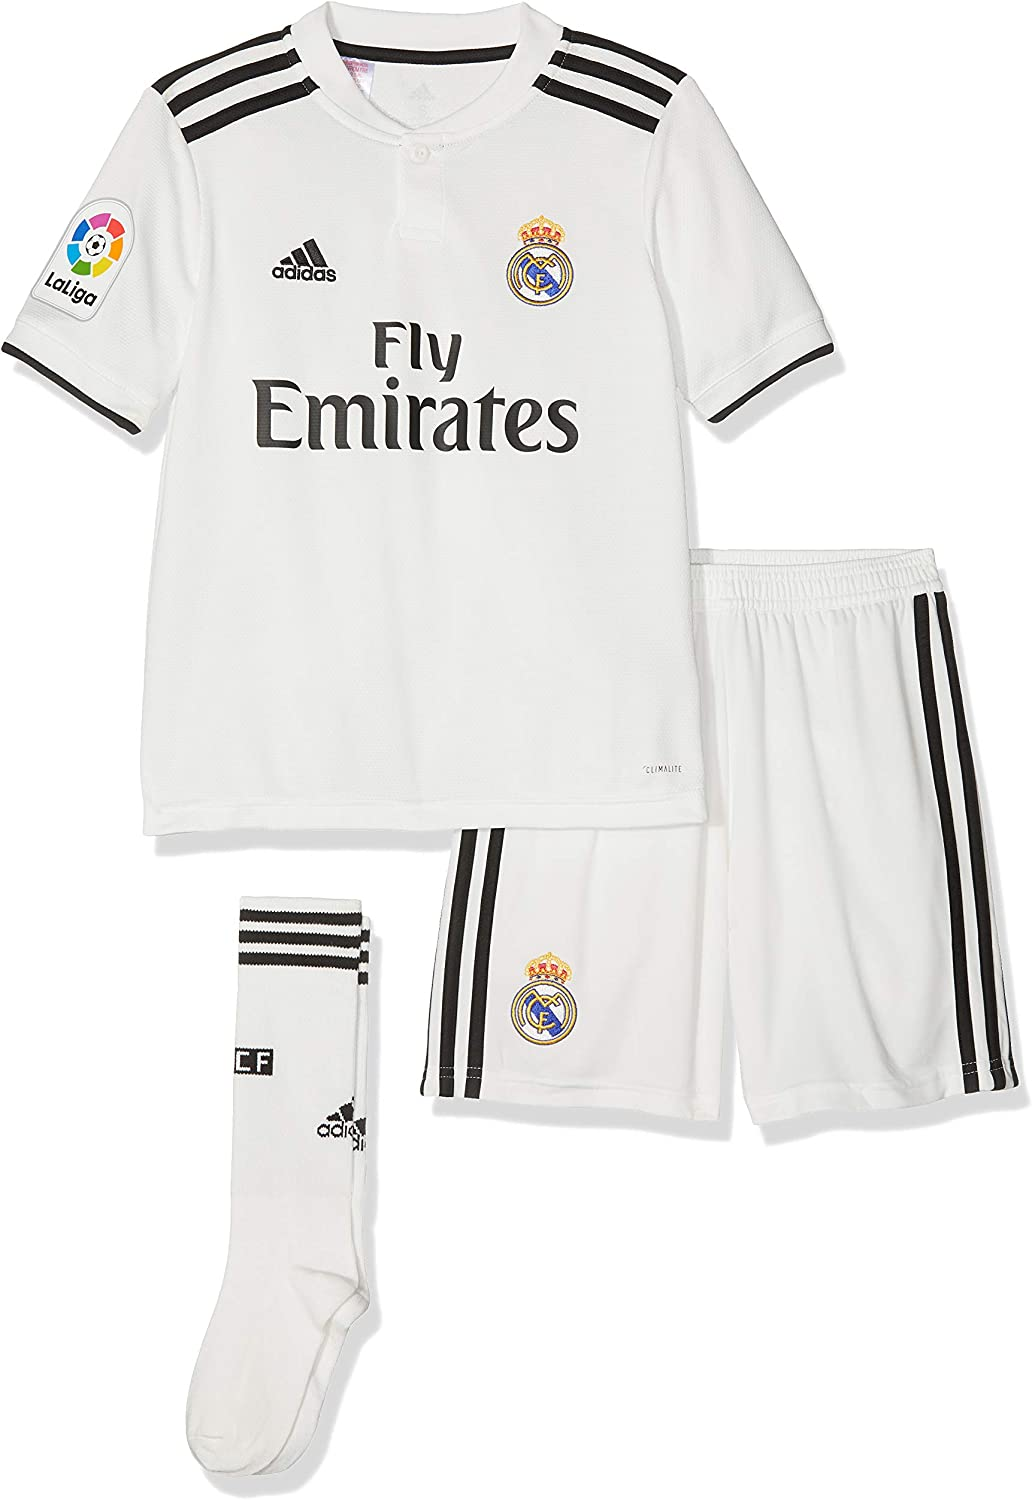 adidas Unisex Kids Real Madrid Home Mini Kit: Amazon.co.uk: Clothing